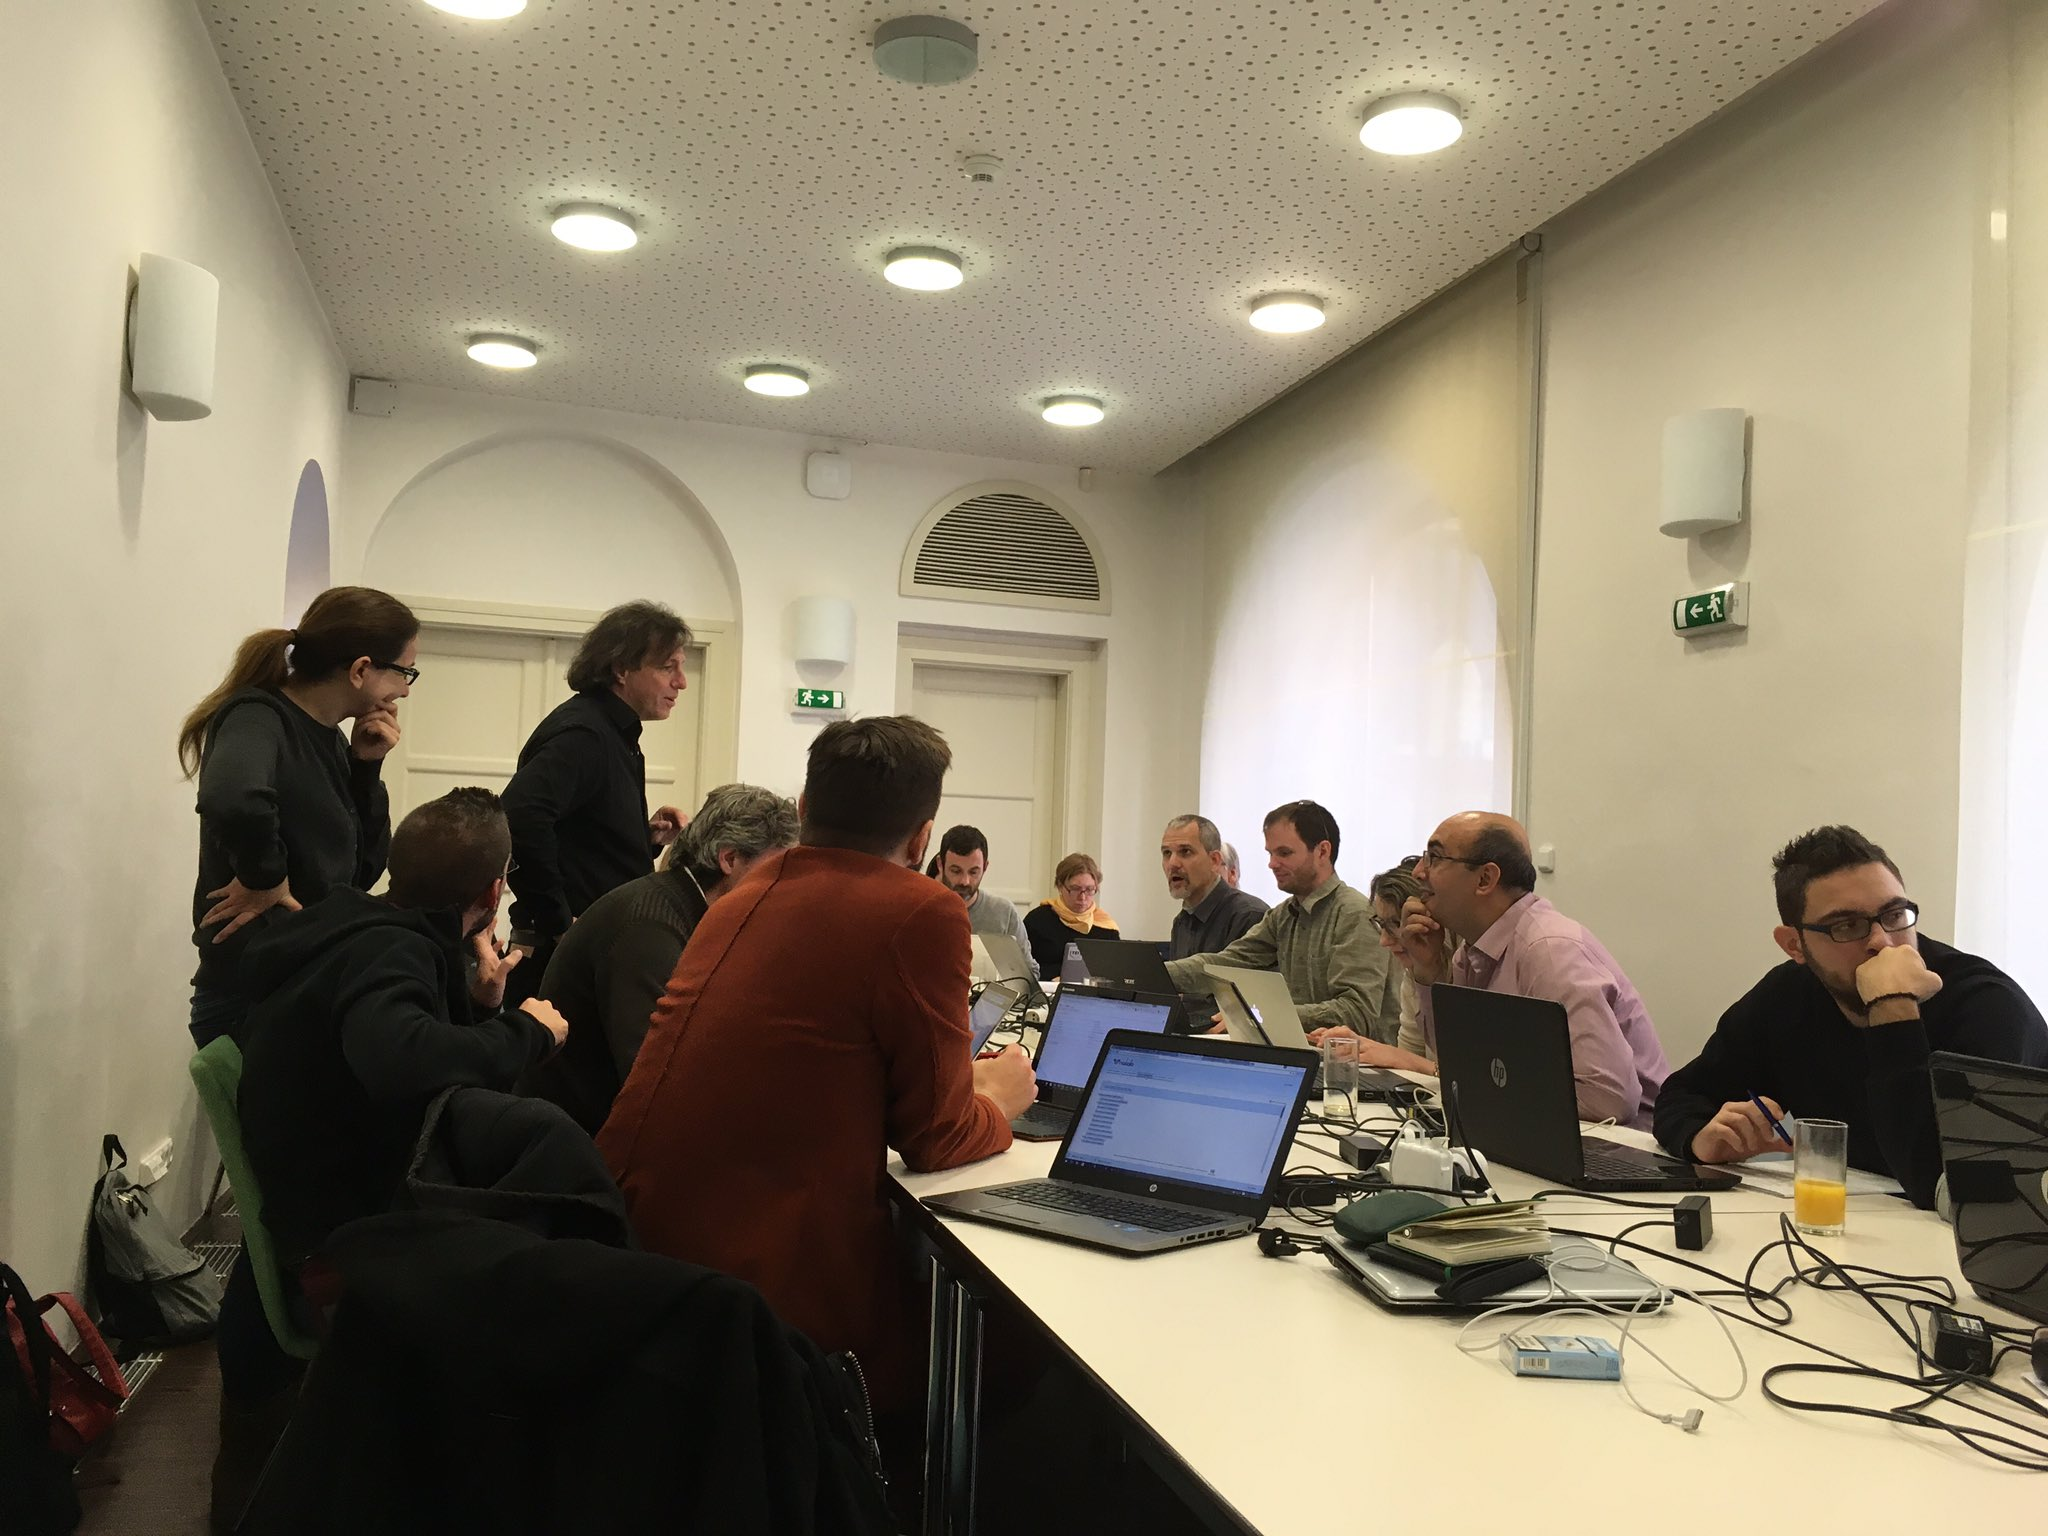 Discover data deposit, reuse and API development with @figshare and #Nakala during #Dariah winterschool https://t.co/erMv3oPpWz